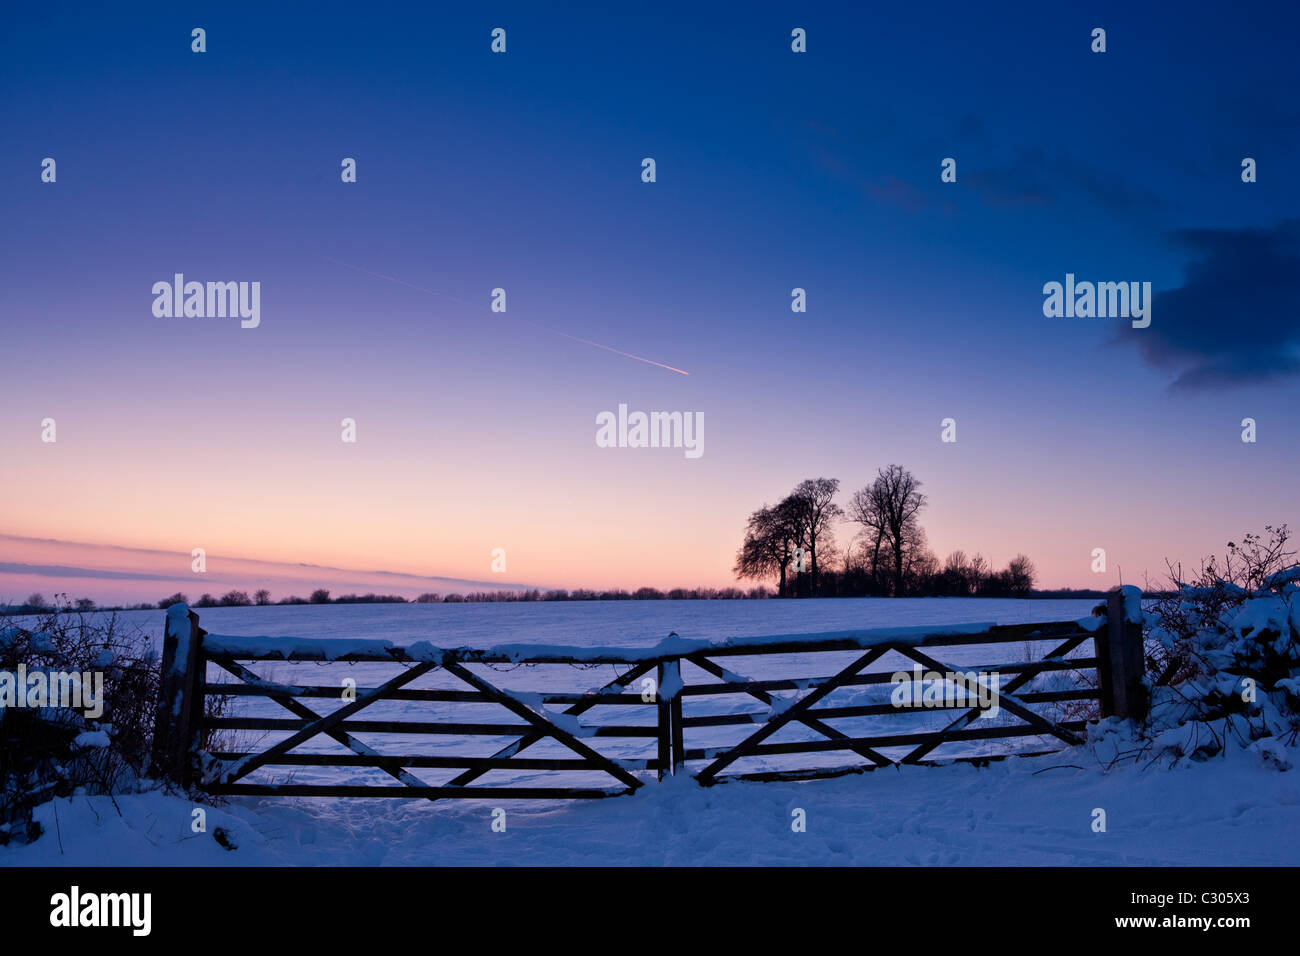 Farm gate in traditional snow scene in The Cotswolds, Swinbrook, Oxfordshire, United Kingdom - Stock Image